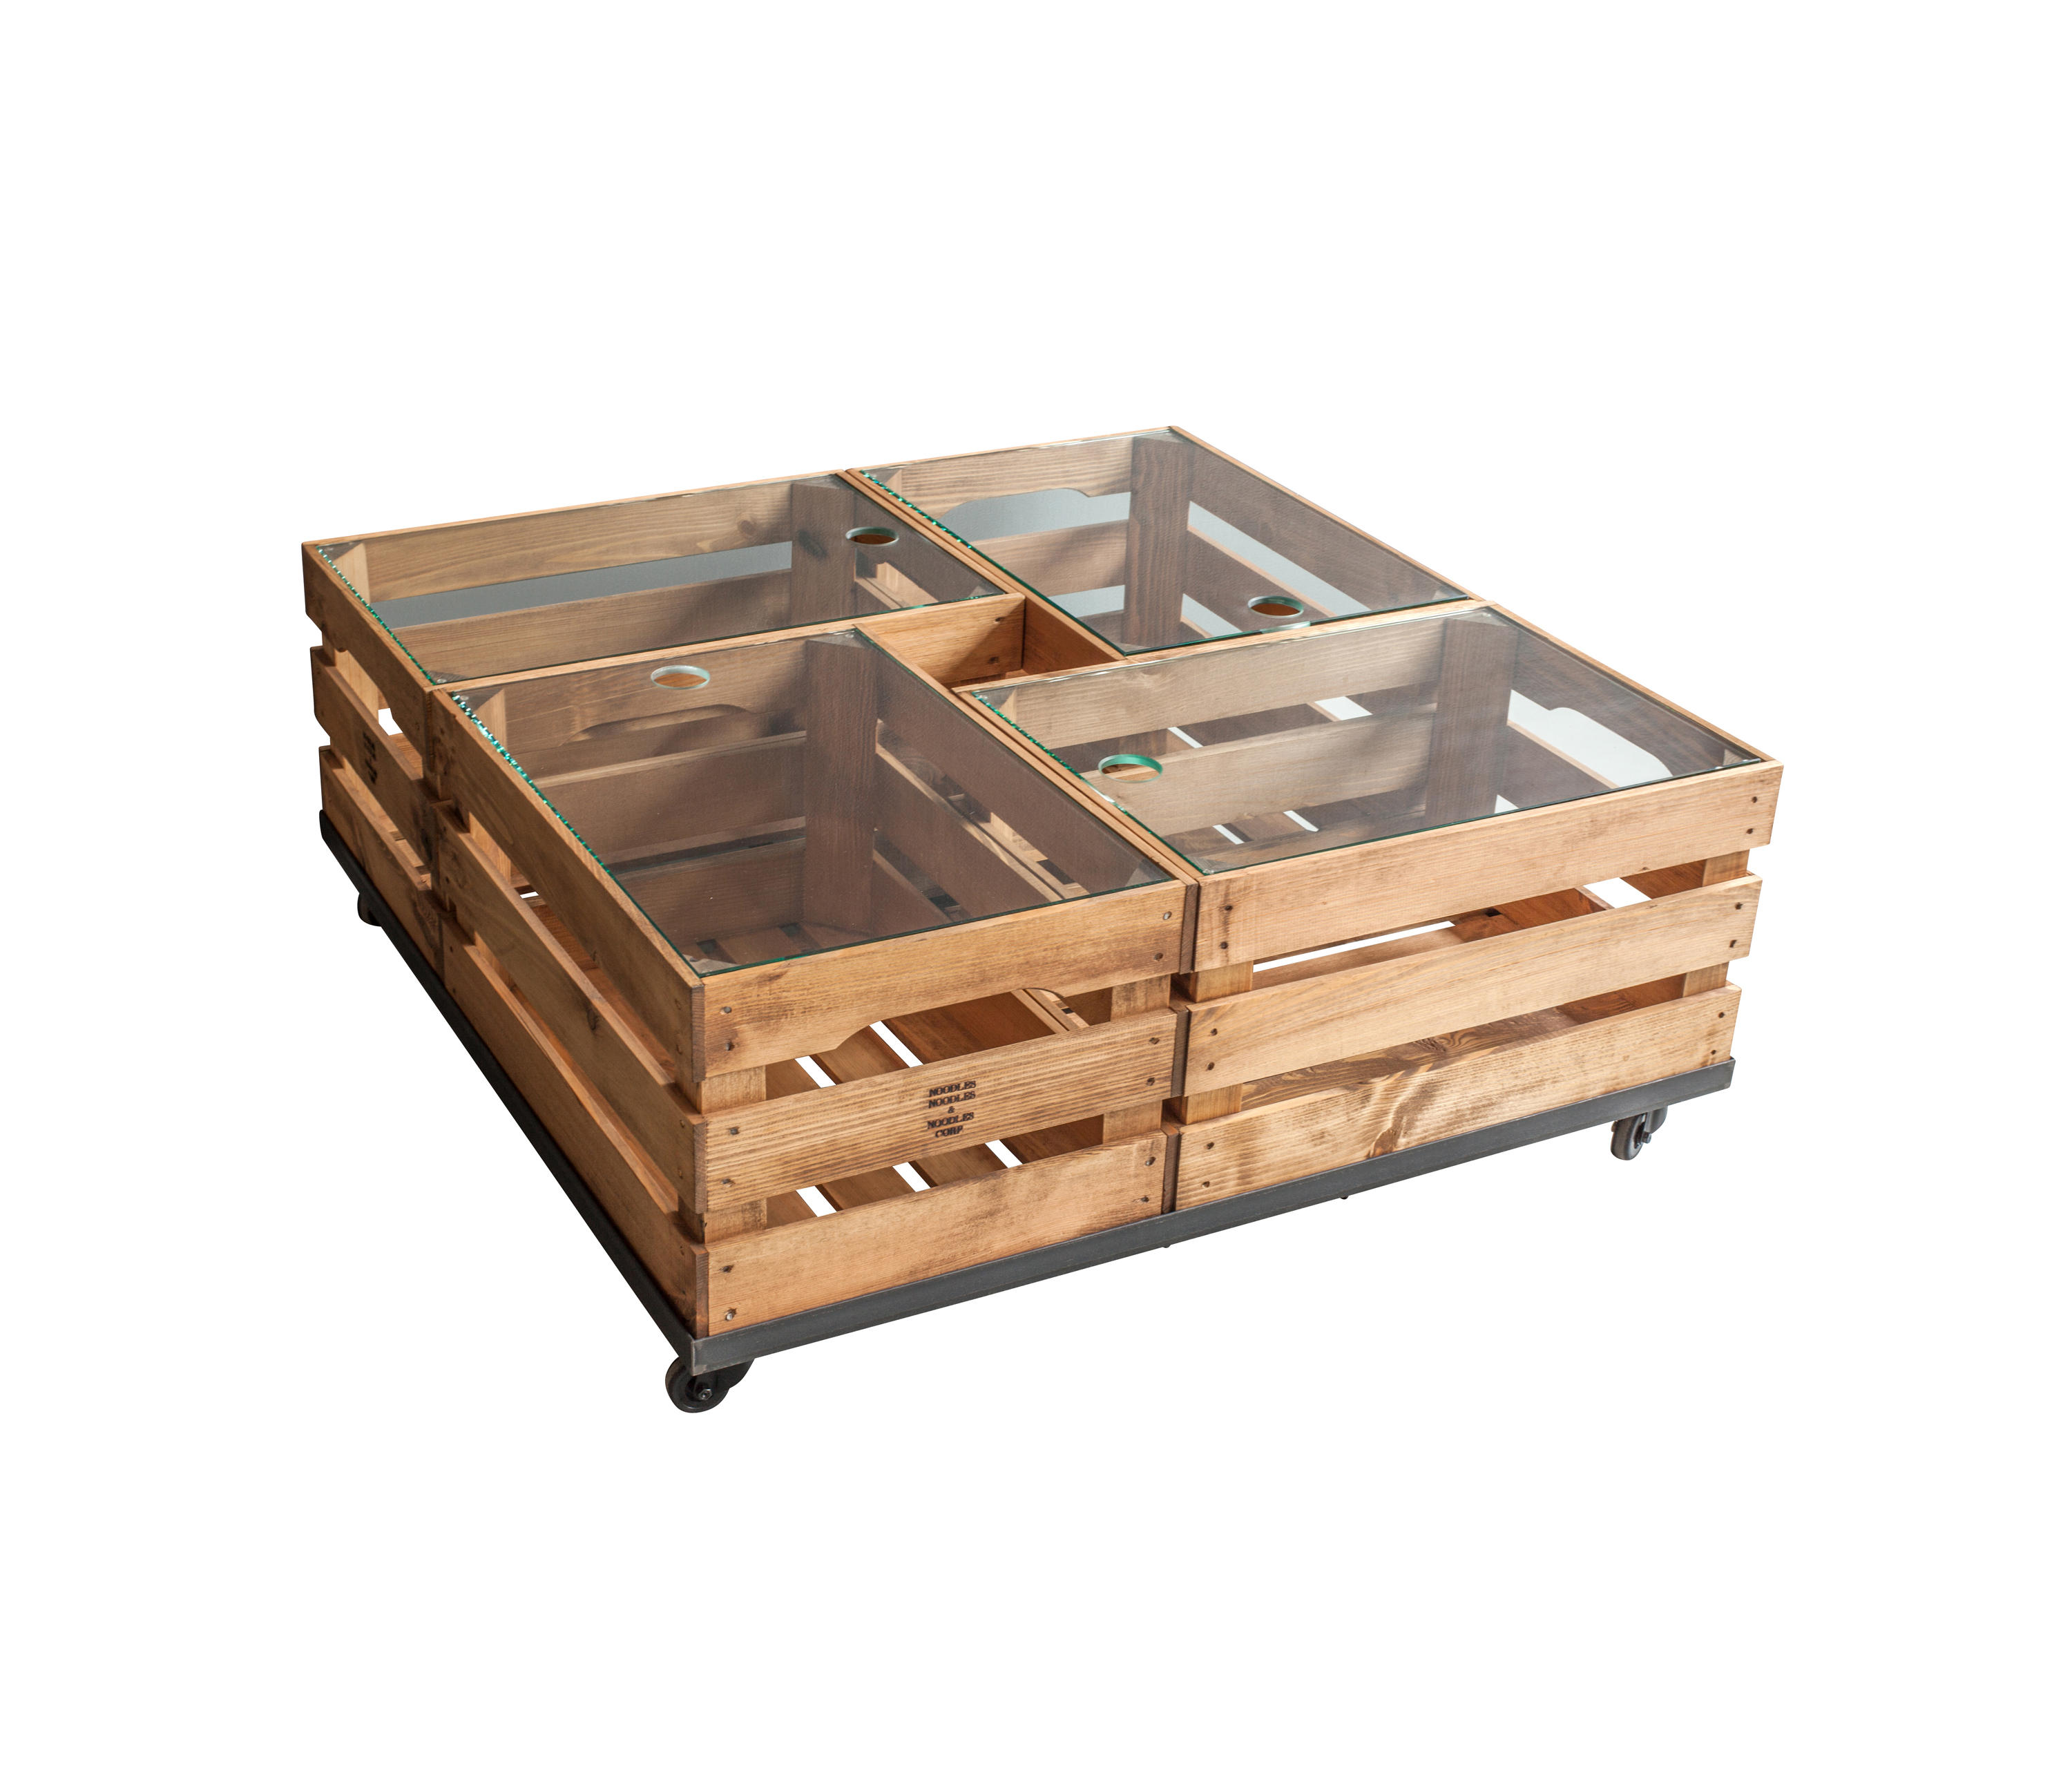 Wooden Crates Glass Table On Wheels Coffee Tables From Noodles